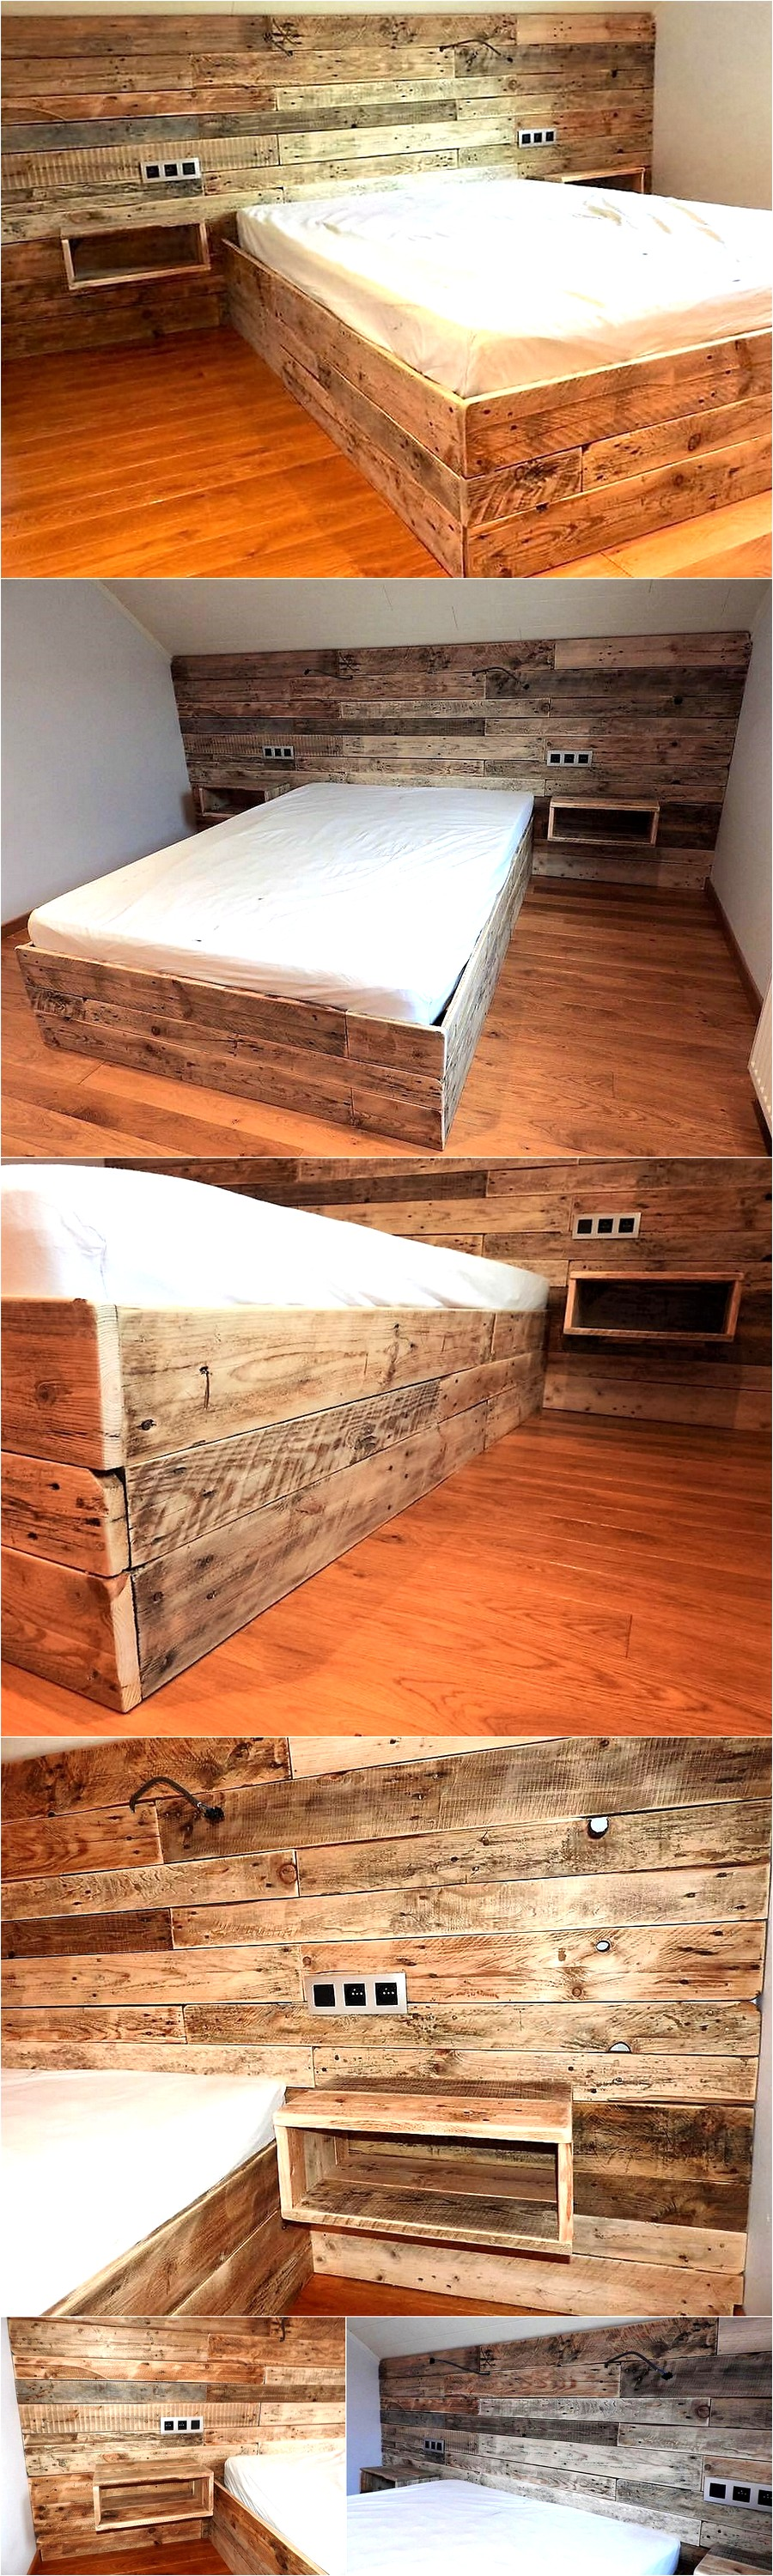 repurposed-pallet-bed-with-wall-headboard